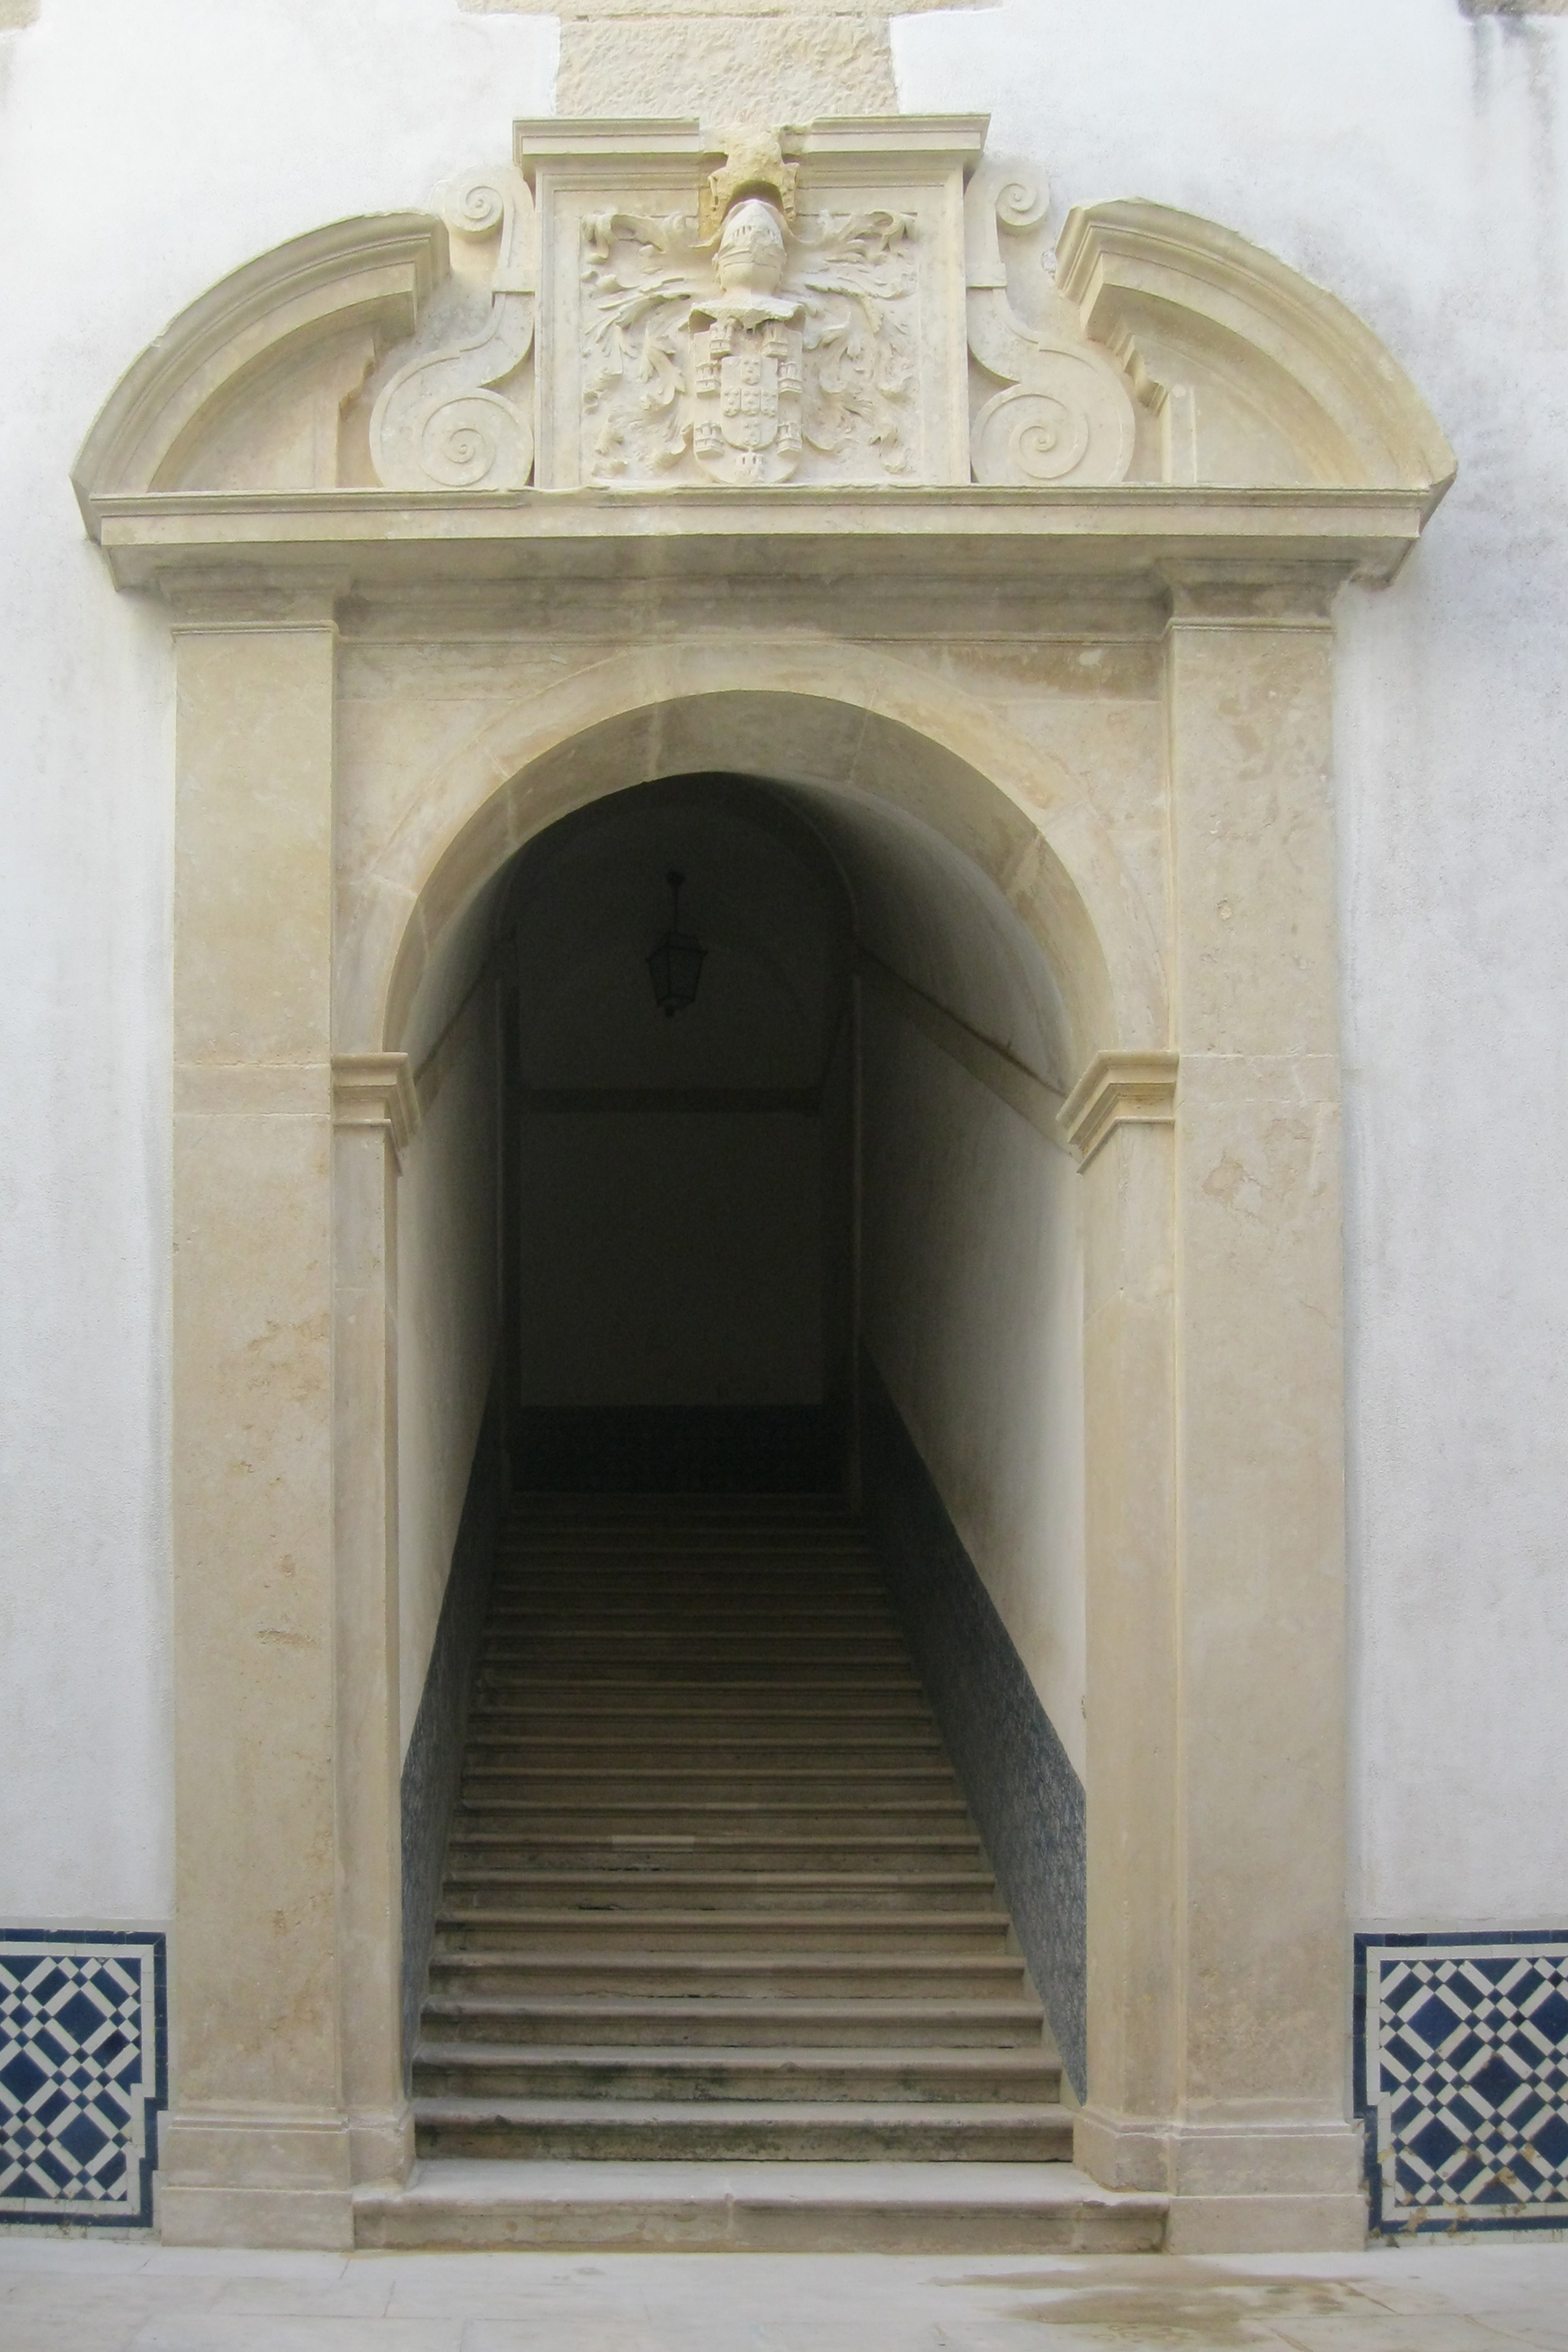 Patio and Philippine staircase